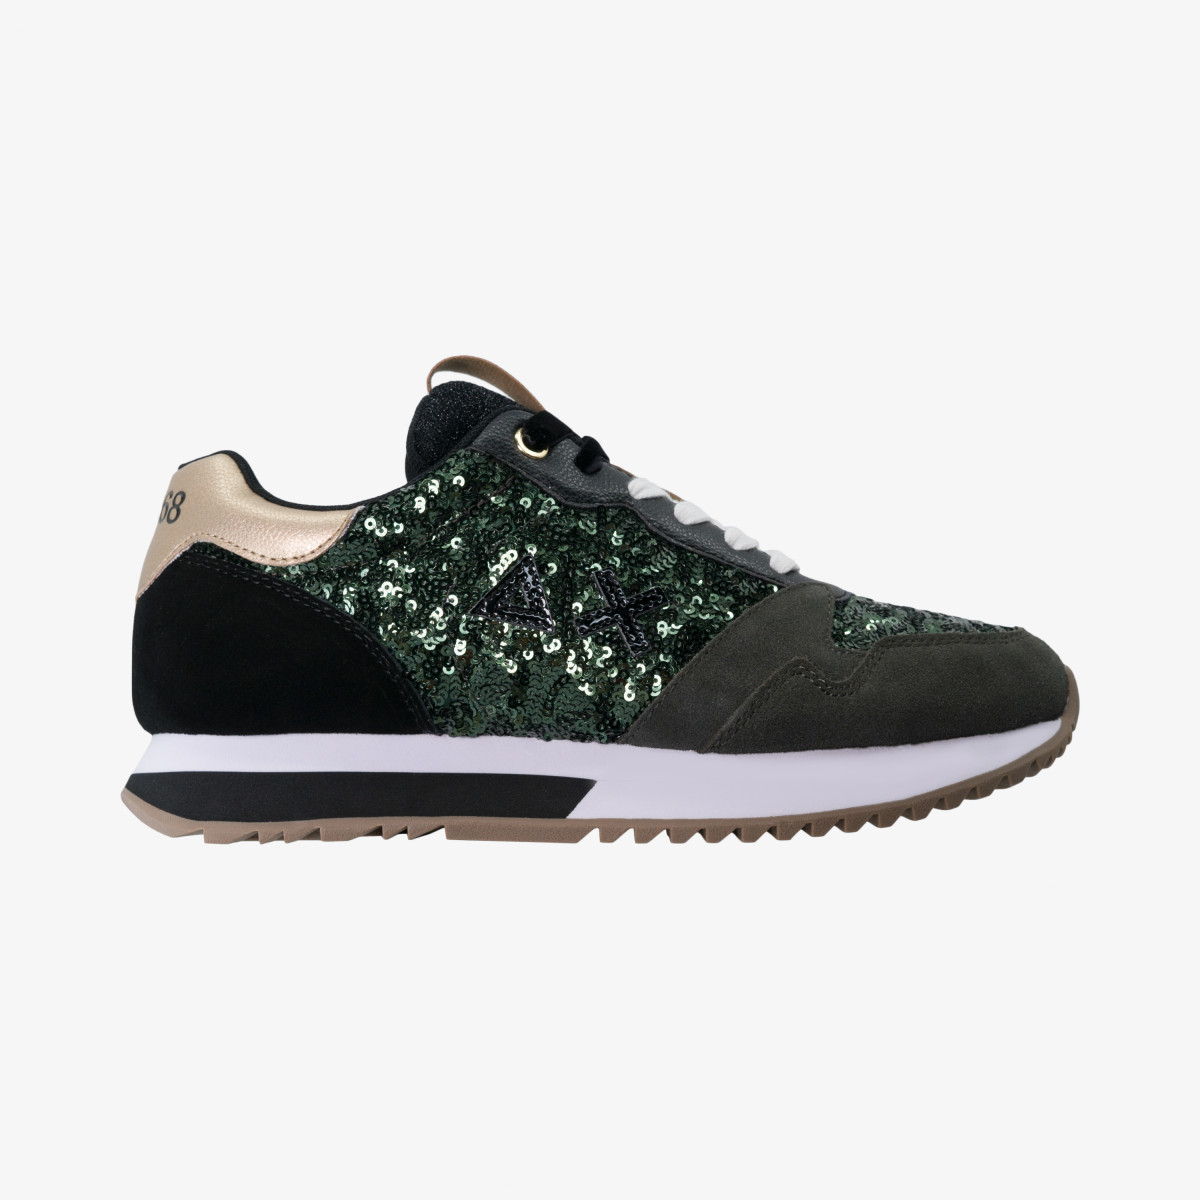 KELLY SOLID PAILLETTES MILITARE SCURO